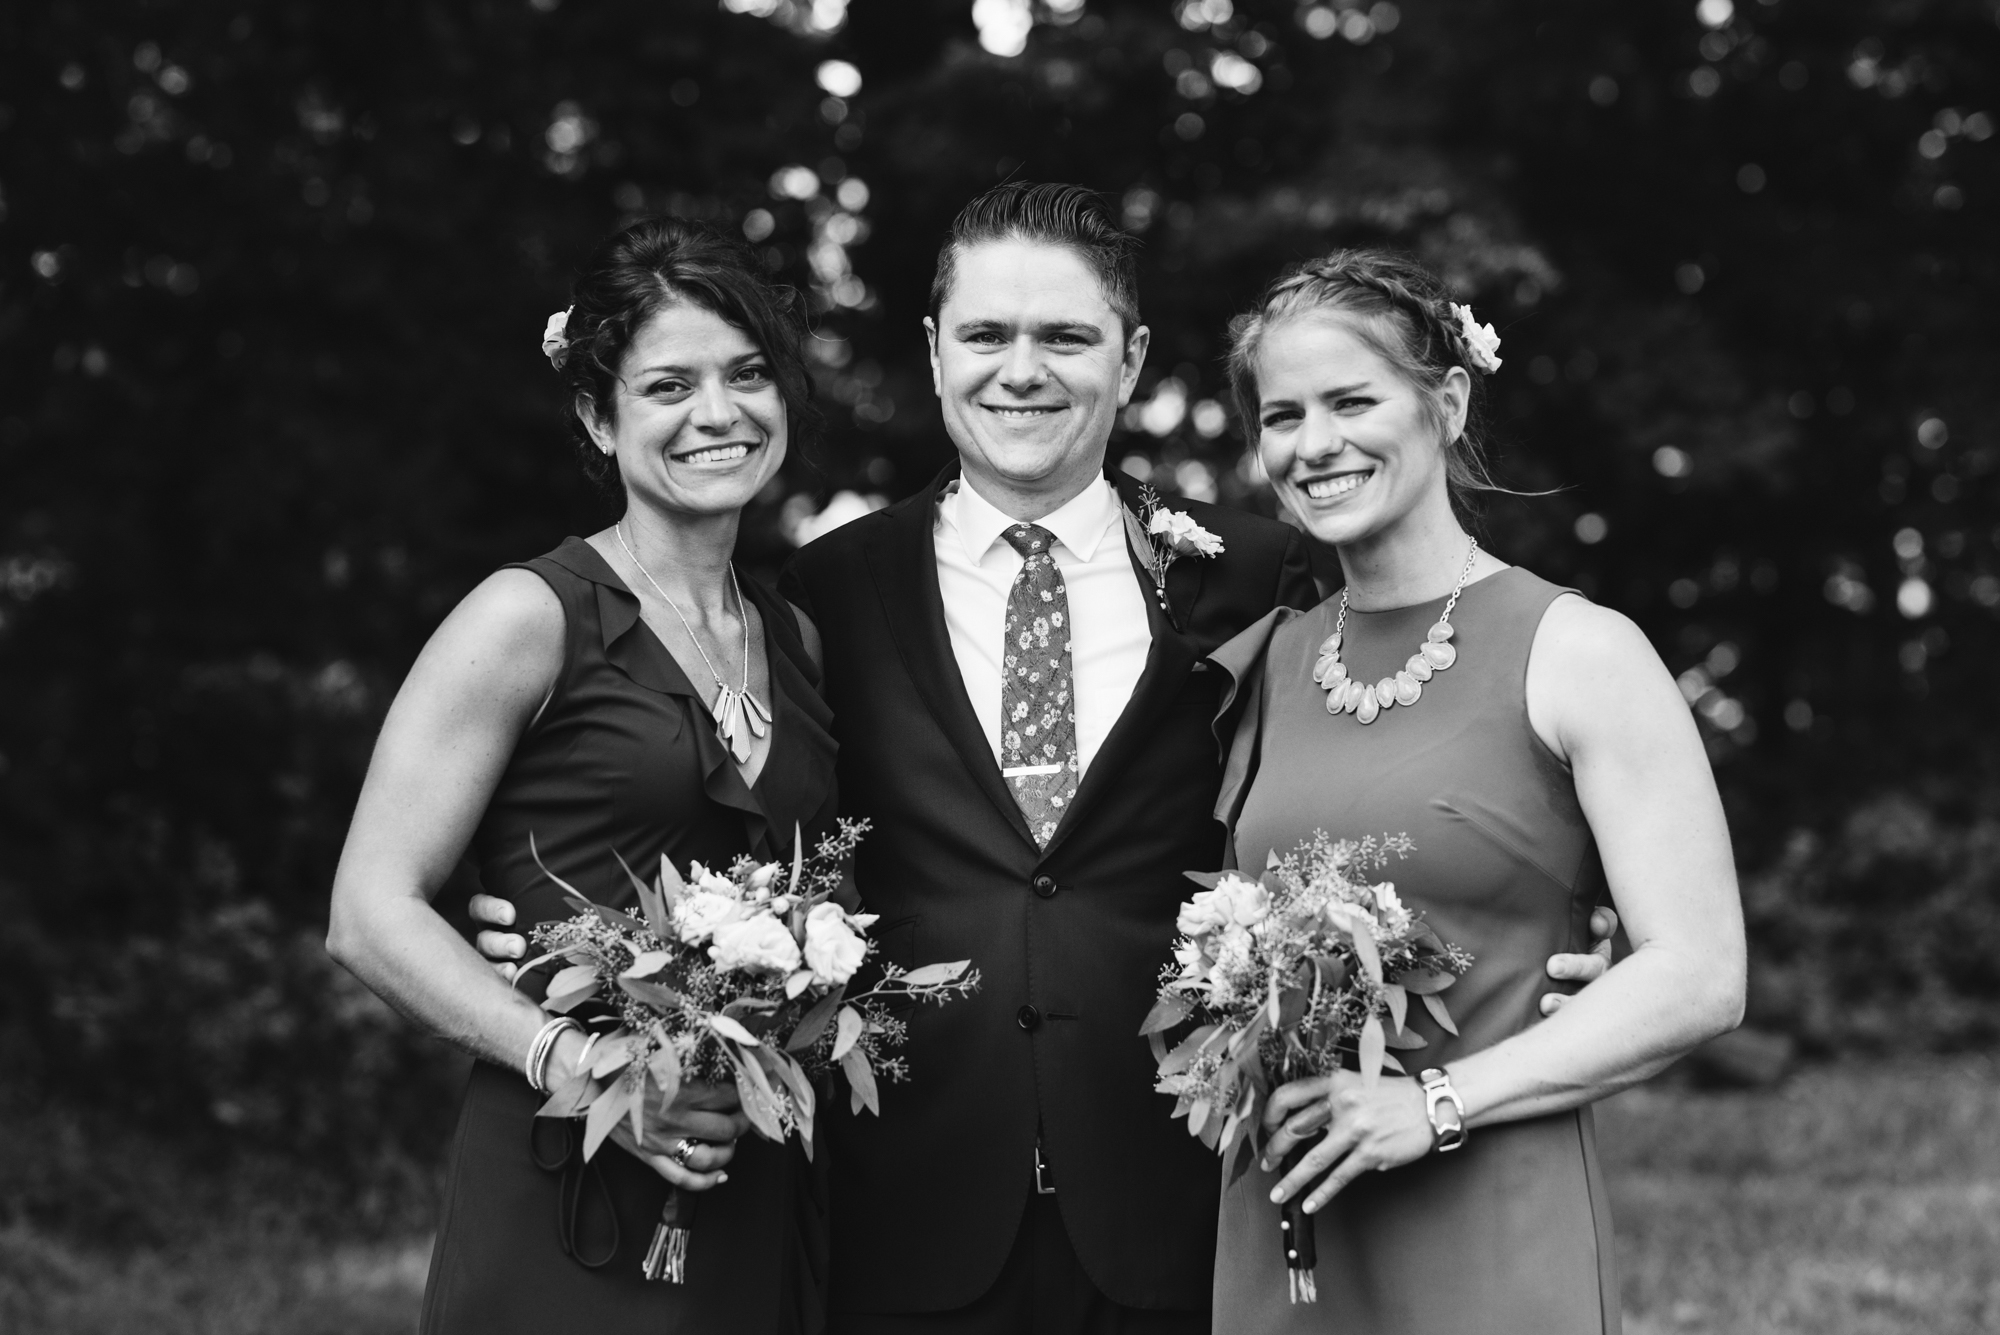 Pop-up Ceremony, Outdoor Wedding, Casual, Simple, Lake Roland, Baltimore, Maryland Wedding Photographer, Laid Back, September Wedding, Groom with Sisters, Black and White Photo